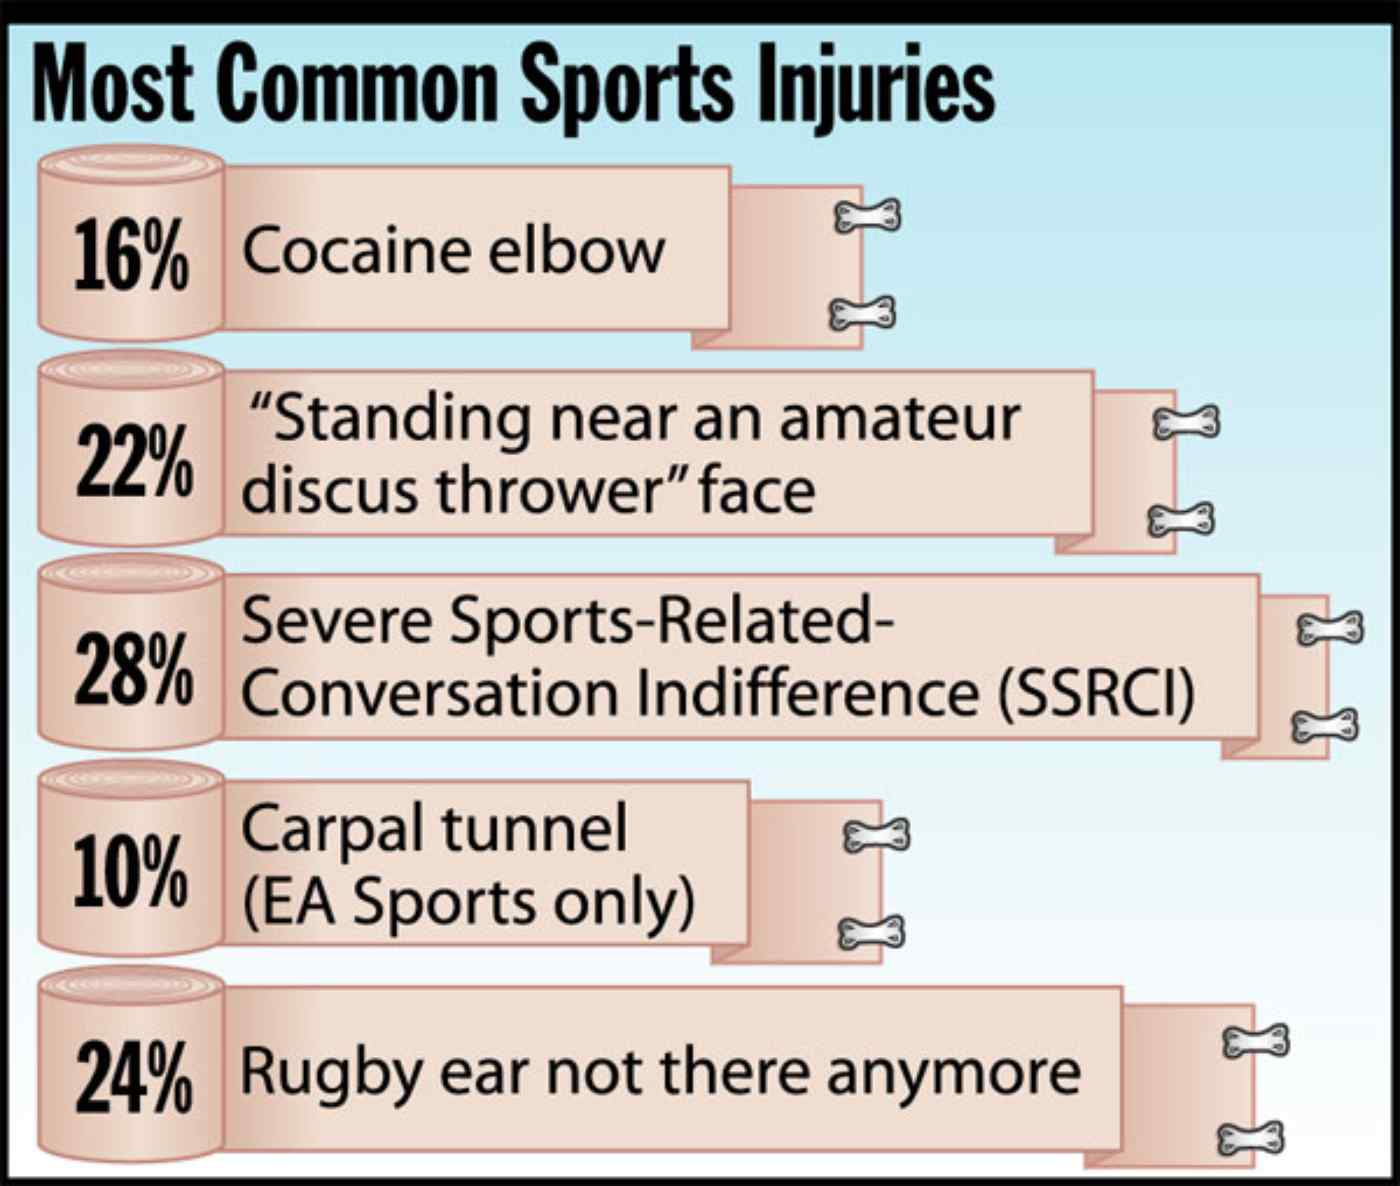 sports injury prevention essay Exposing themselves to the risk of injury prevention of sports injuries in youth  has great potential health gains: in the short-term, the absolute number of sports .